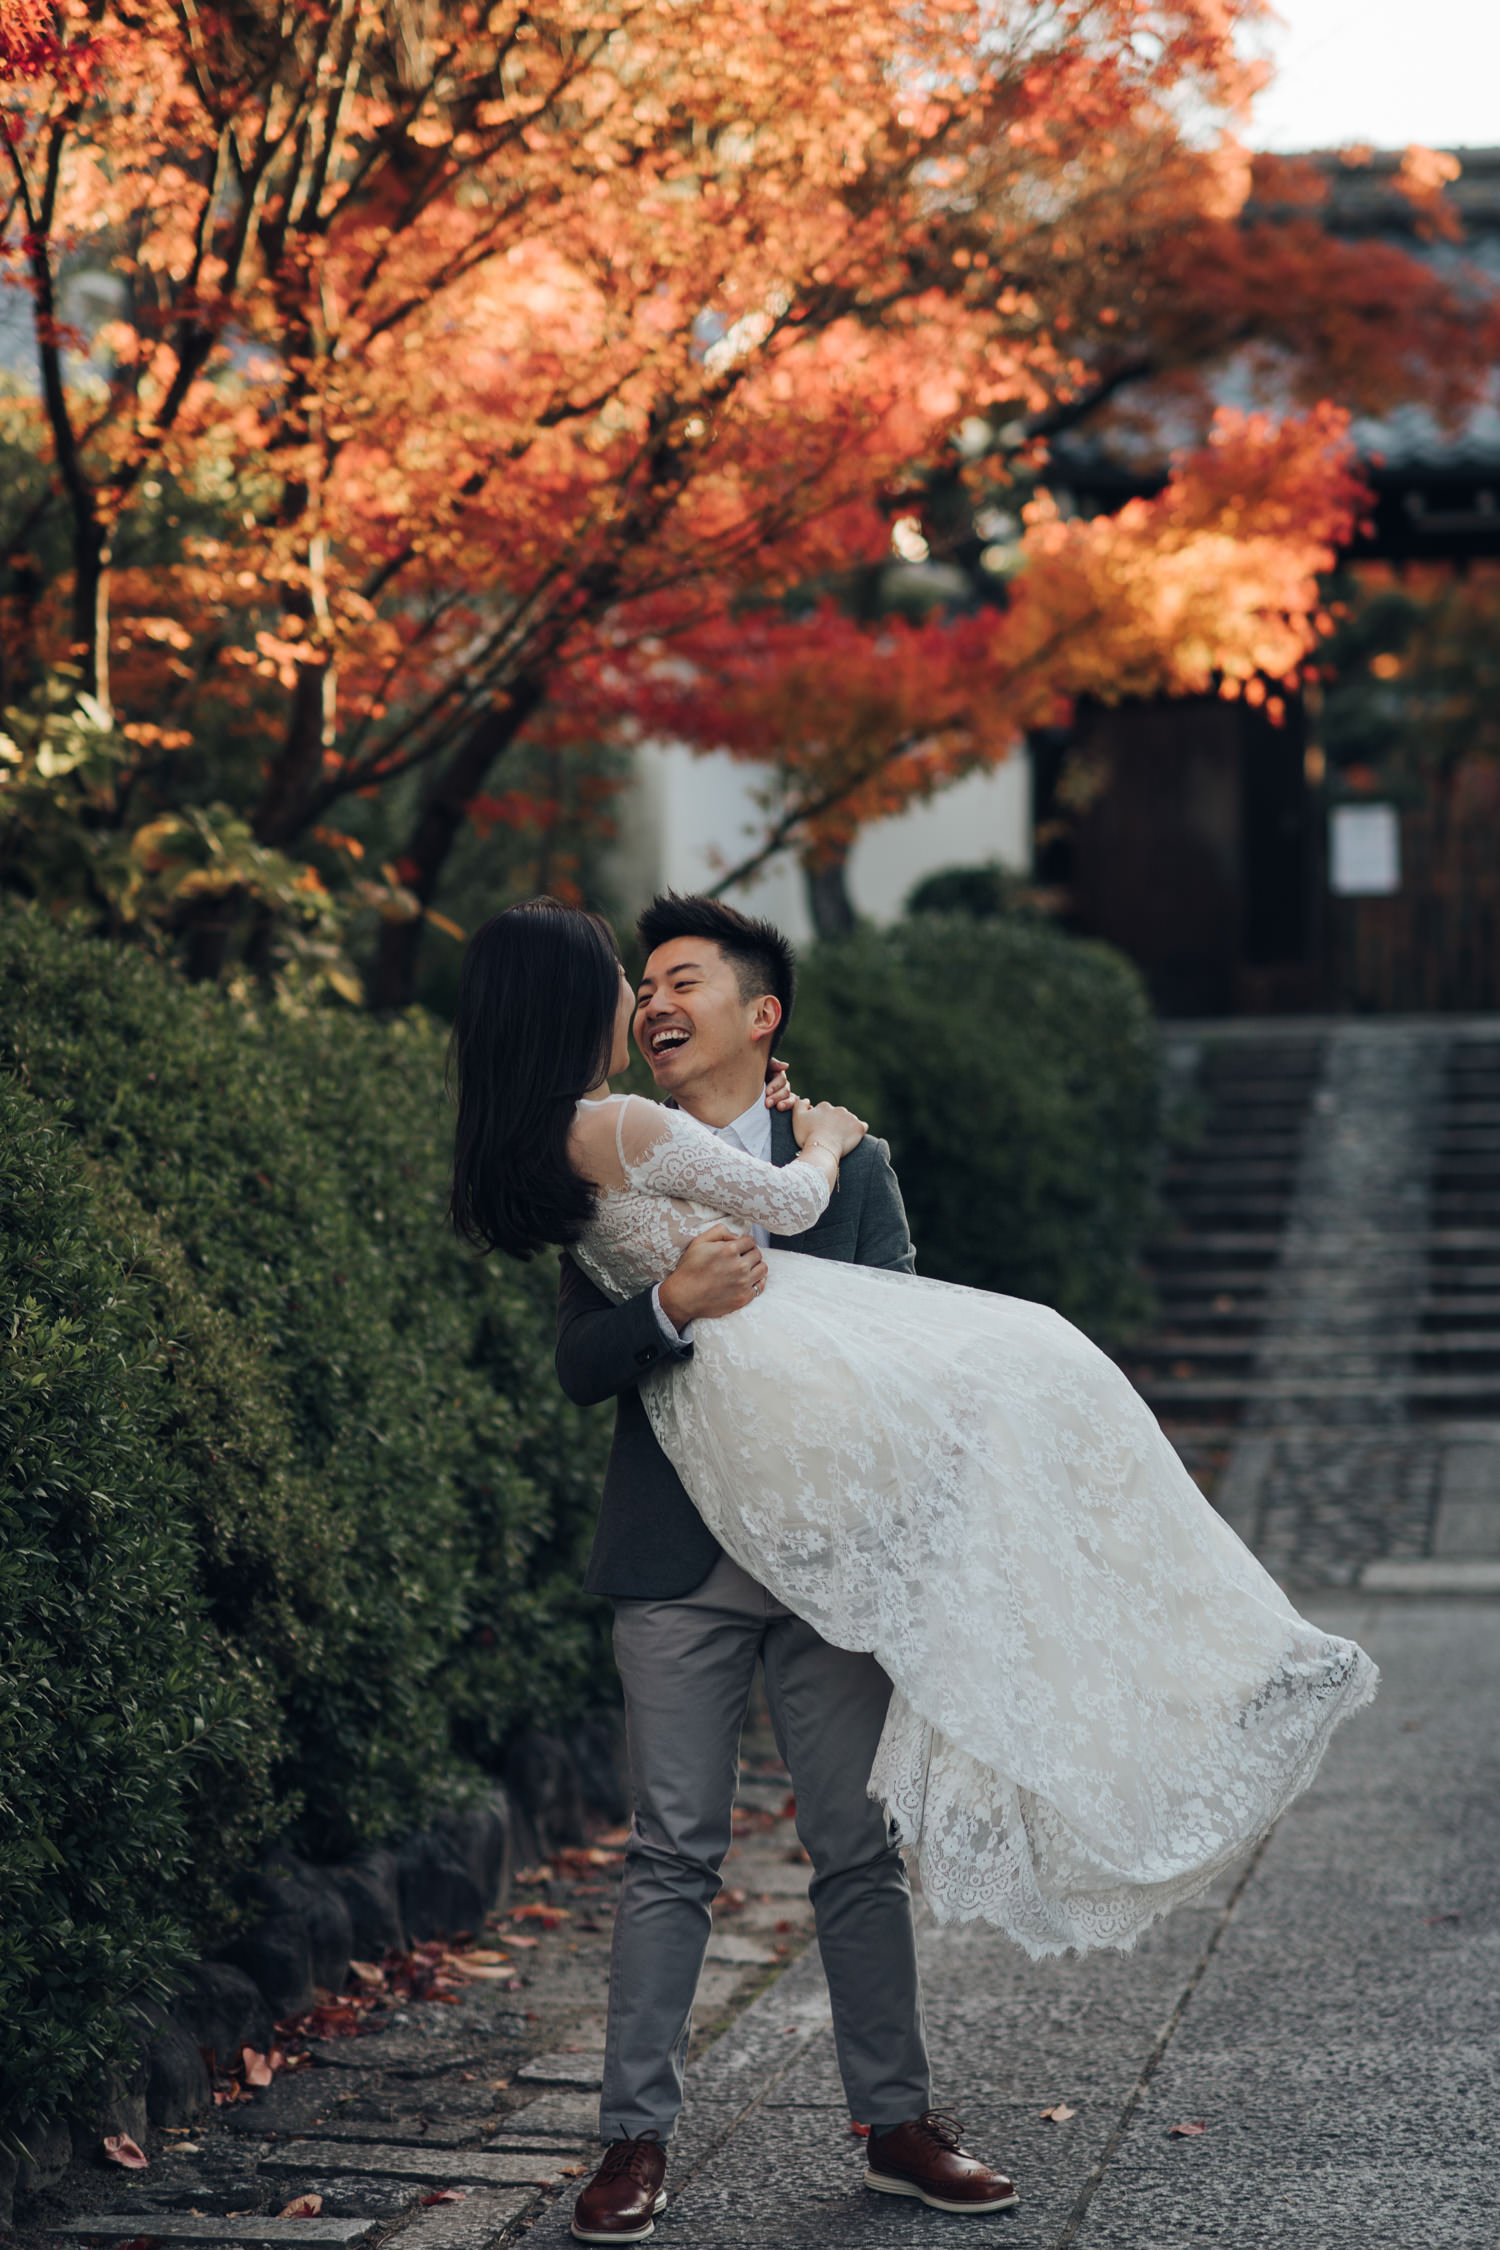 Autumn photoshoot in Kyoto with golden gingko leaves